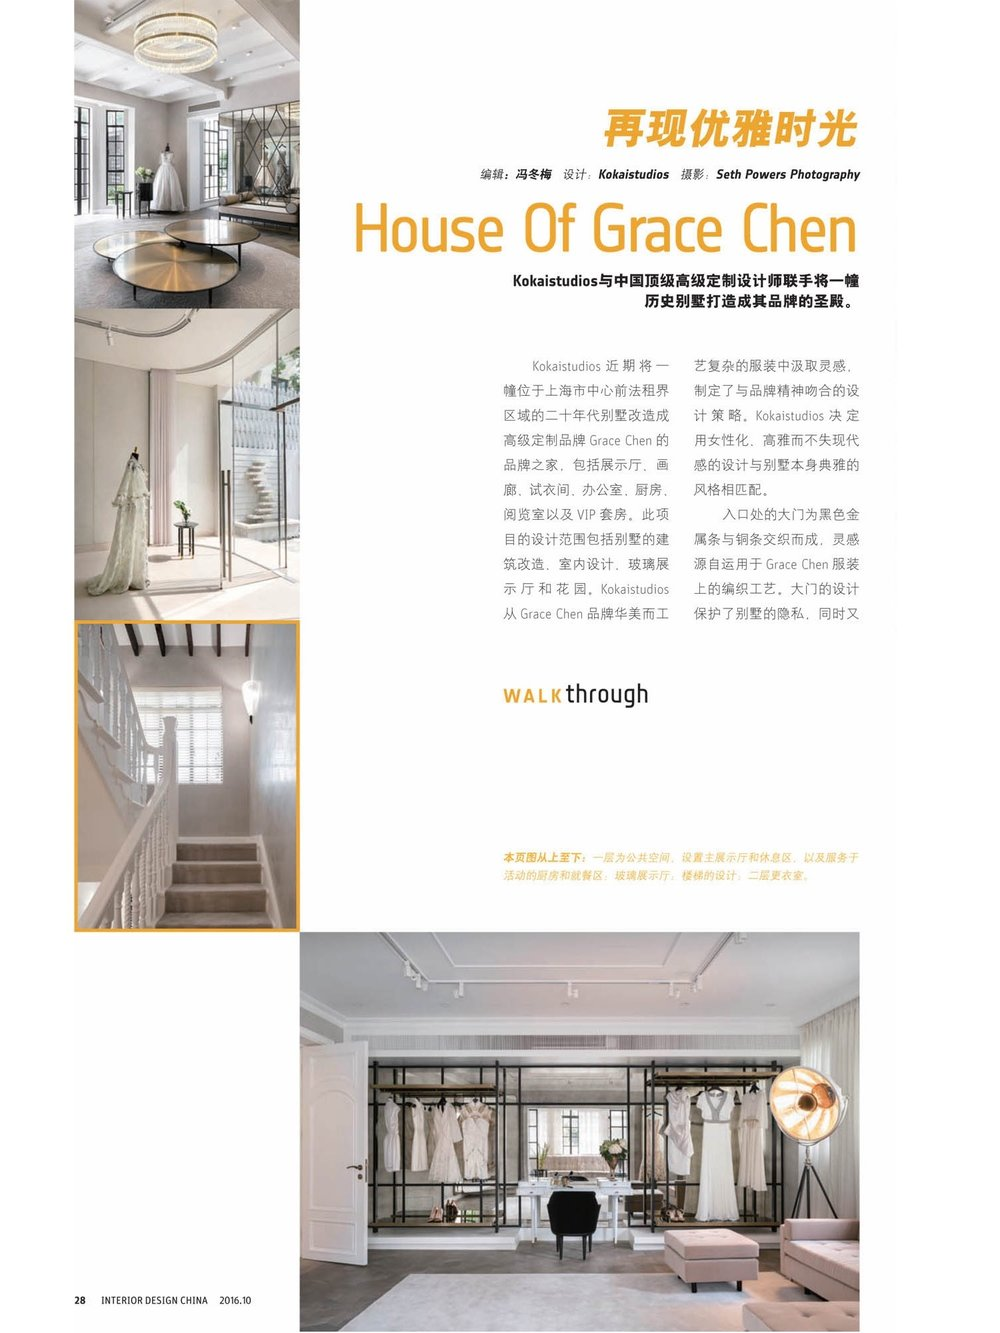 Interior Design China | October 2016 - House of Grace Chen / Kokaistudios